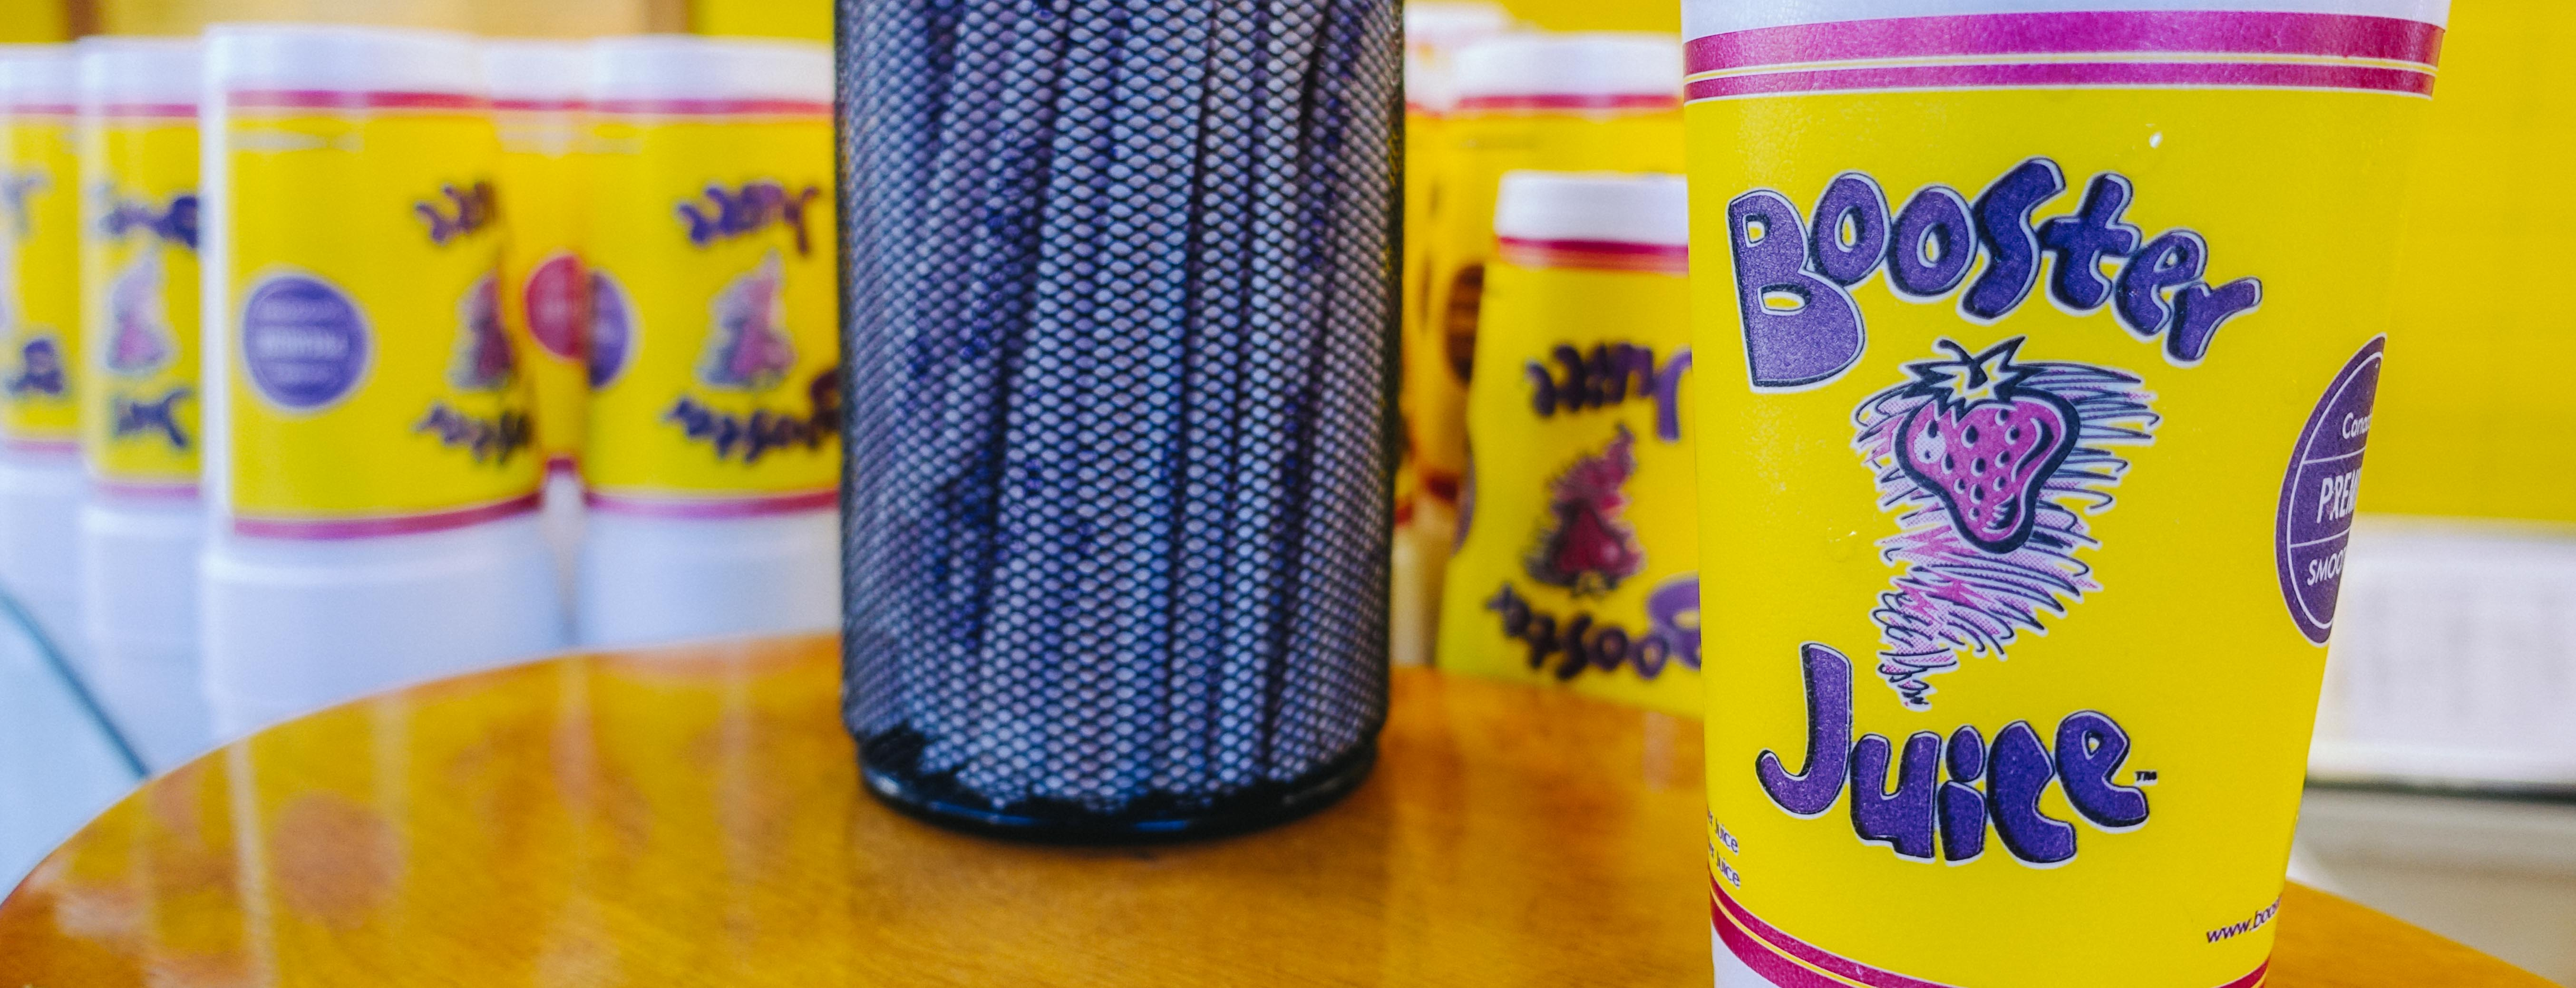 a Free birthday drink from Booster Juice